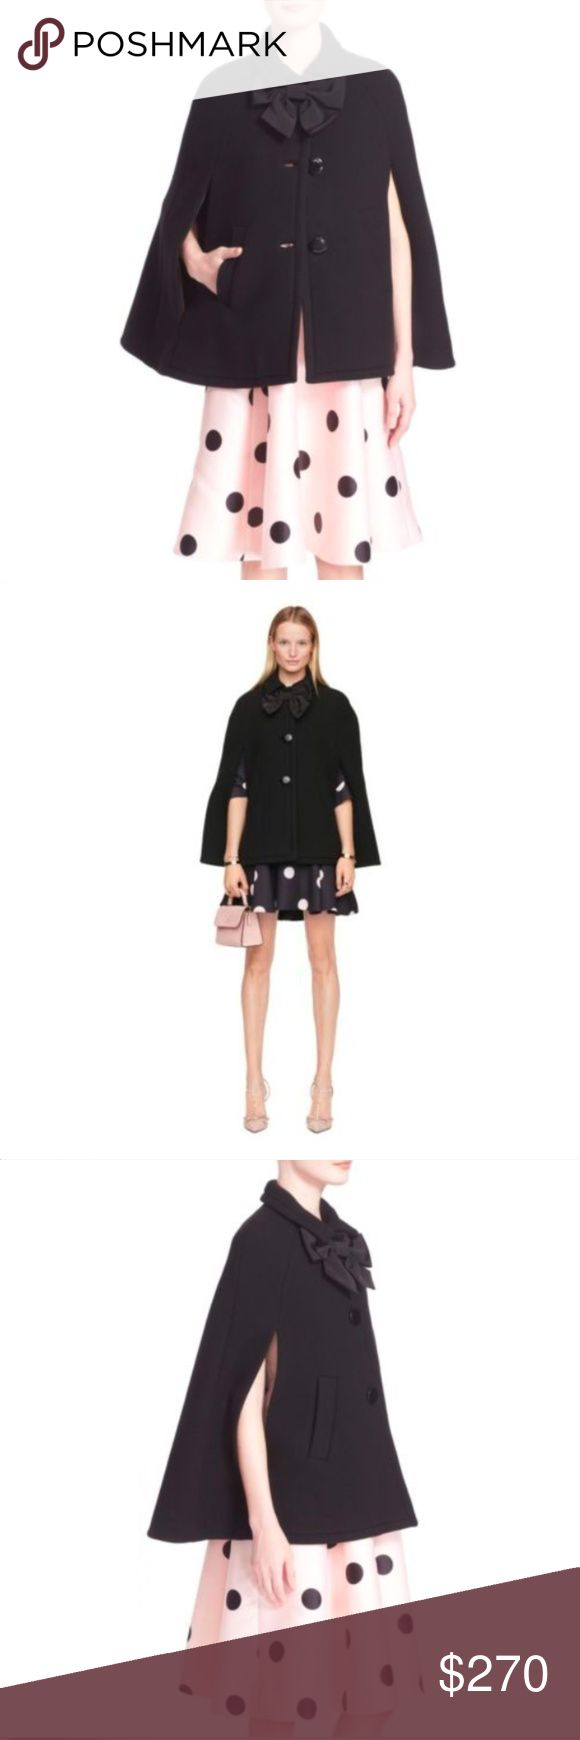 """Kate spade Bow Capelet Poncho/Cape in Black Size:S Retail:$678 Detail: A tonal grosgrain bow adds a signature kate spade touch to a charming layering piece crafted from a hearty wool blend. Glossy buttons finish the fanciful, effortlessly elegant design. Front button closure. Cape fit. Two front Pockets. Lined. 78% wool, 22% polyamide. Lining:96% polyester, 4% Elastane. Dry clean. By kate spade new york. Imported. Measurements: Length:27.5"""" kate spade Jackets & Coats Capes"""